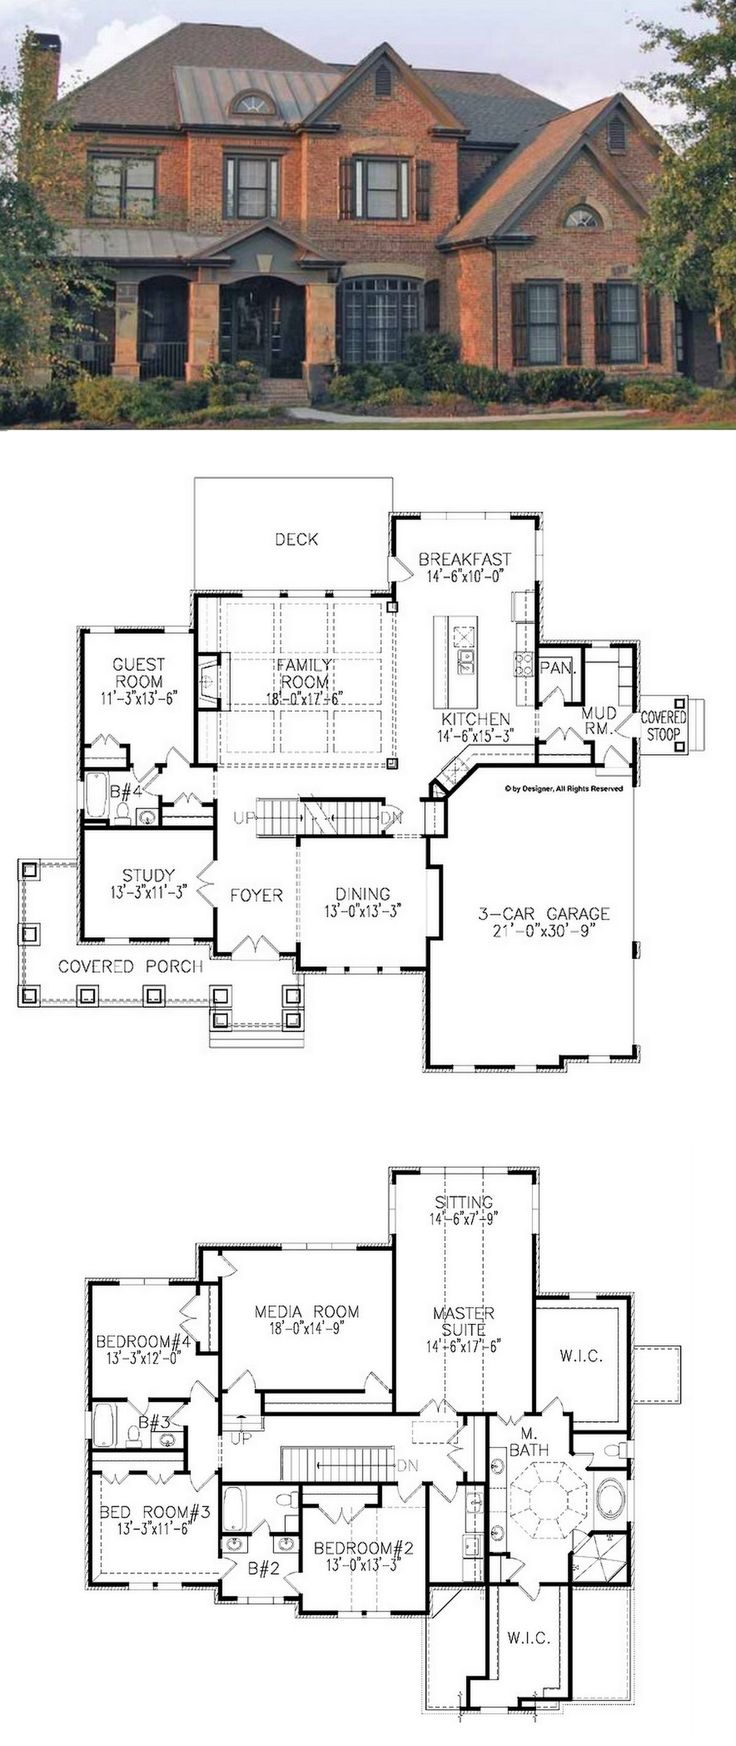 Pin by Martha Kenworthy on Home Ideas  House plans House Traditional house plans